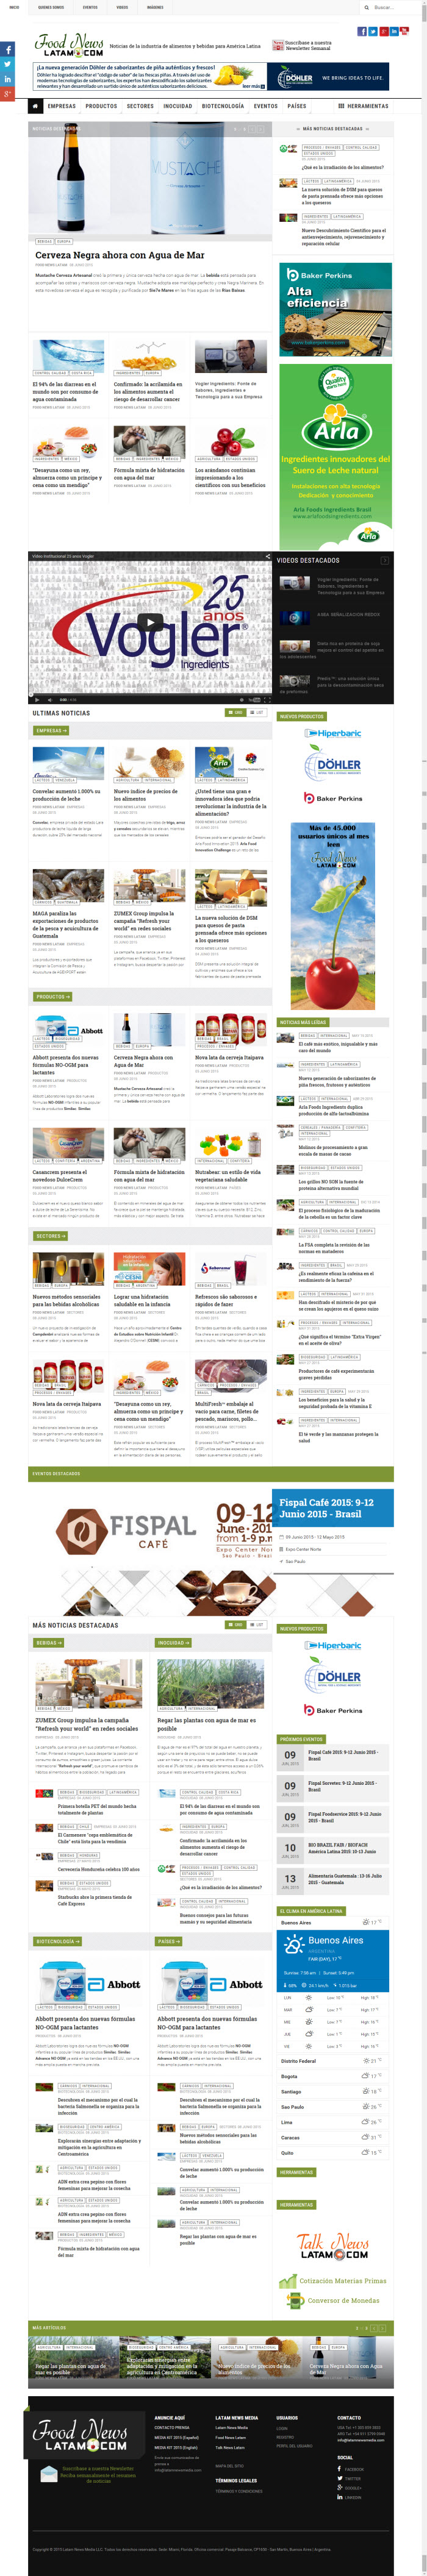 Pagina Nueva Food News Latam